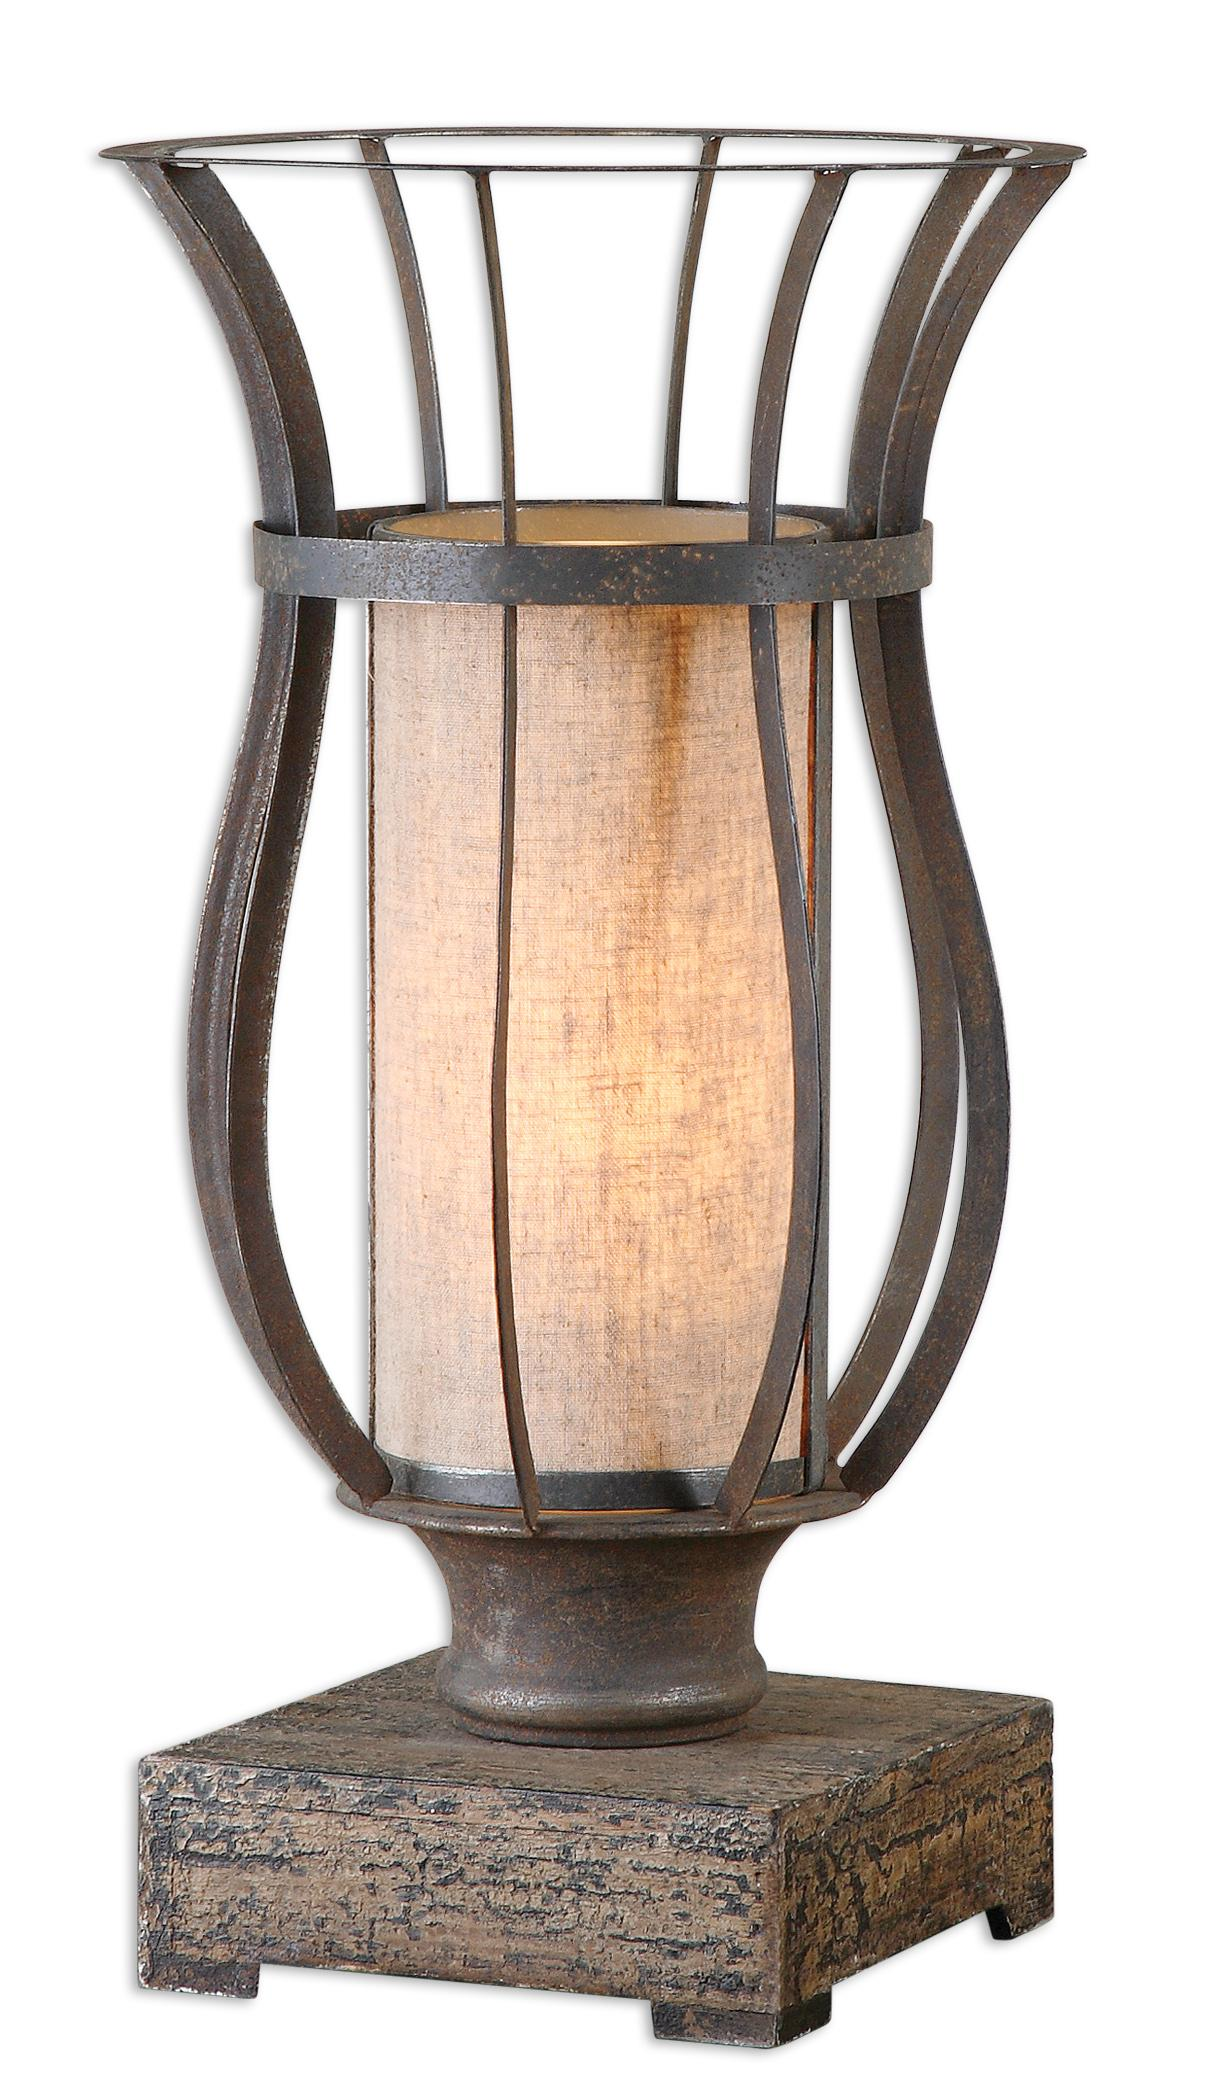 Accent Lamps Minozzo Bronze Accent Lamp by Uttermost at Upper Room Home Furnishings